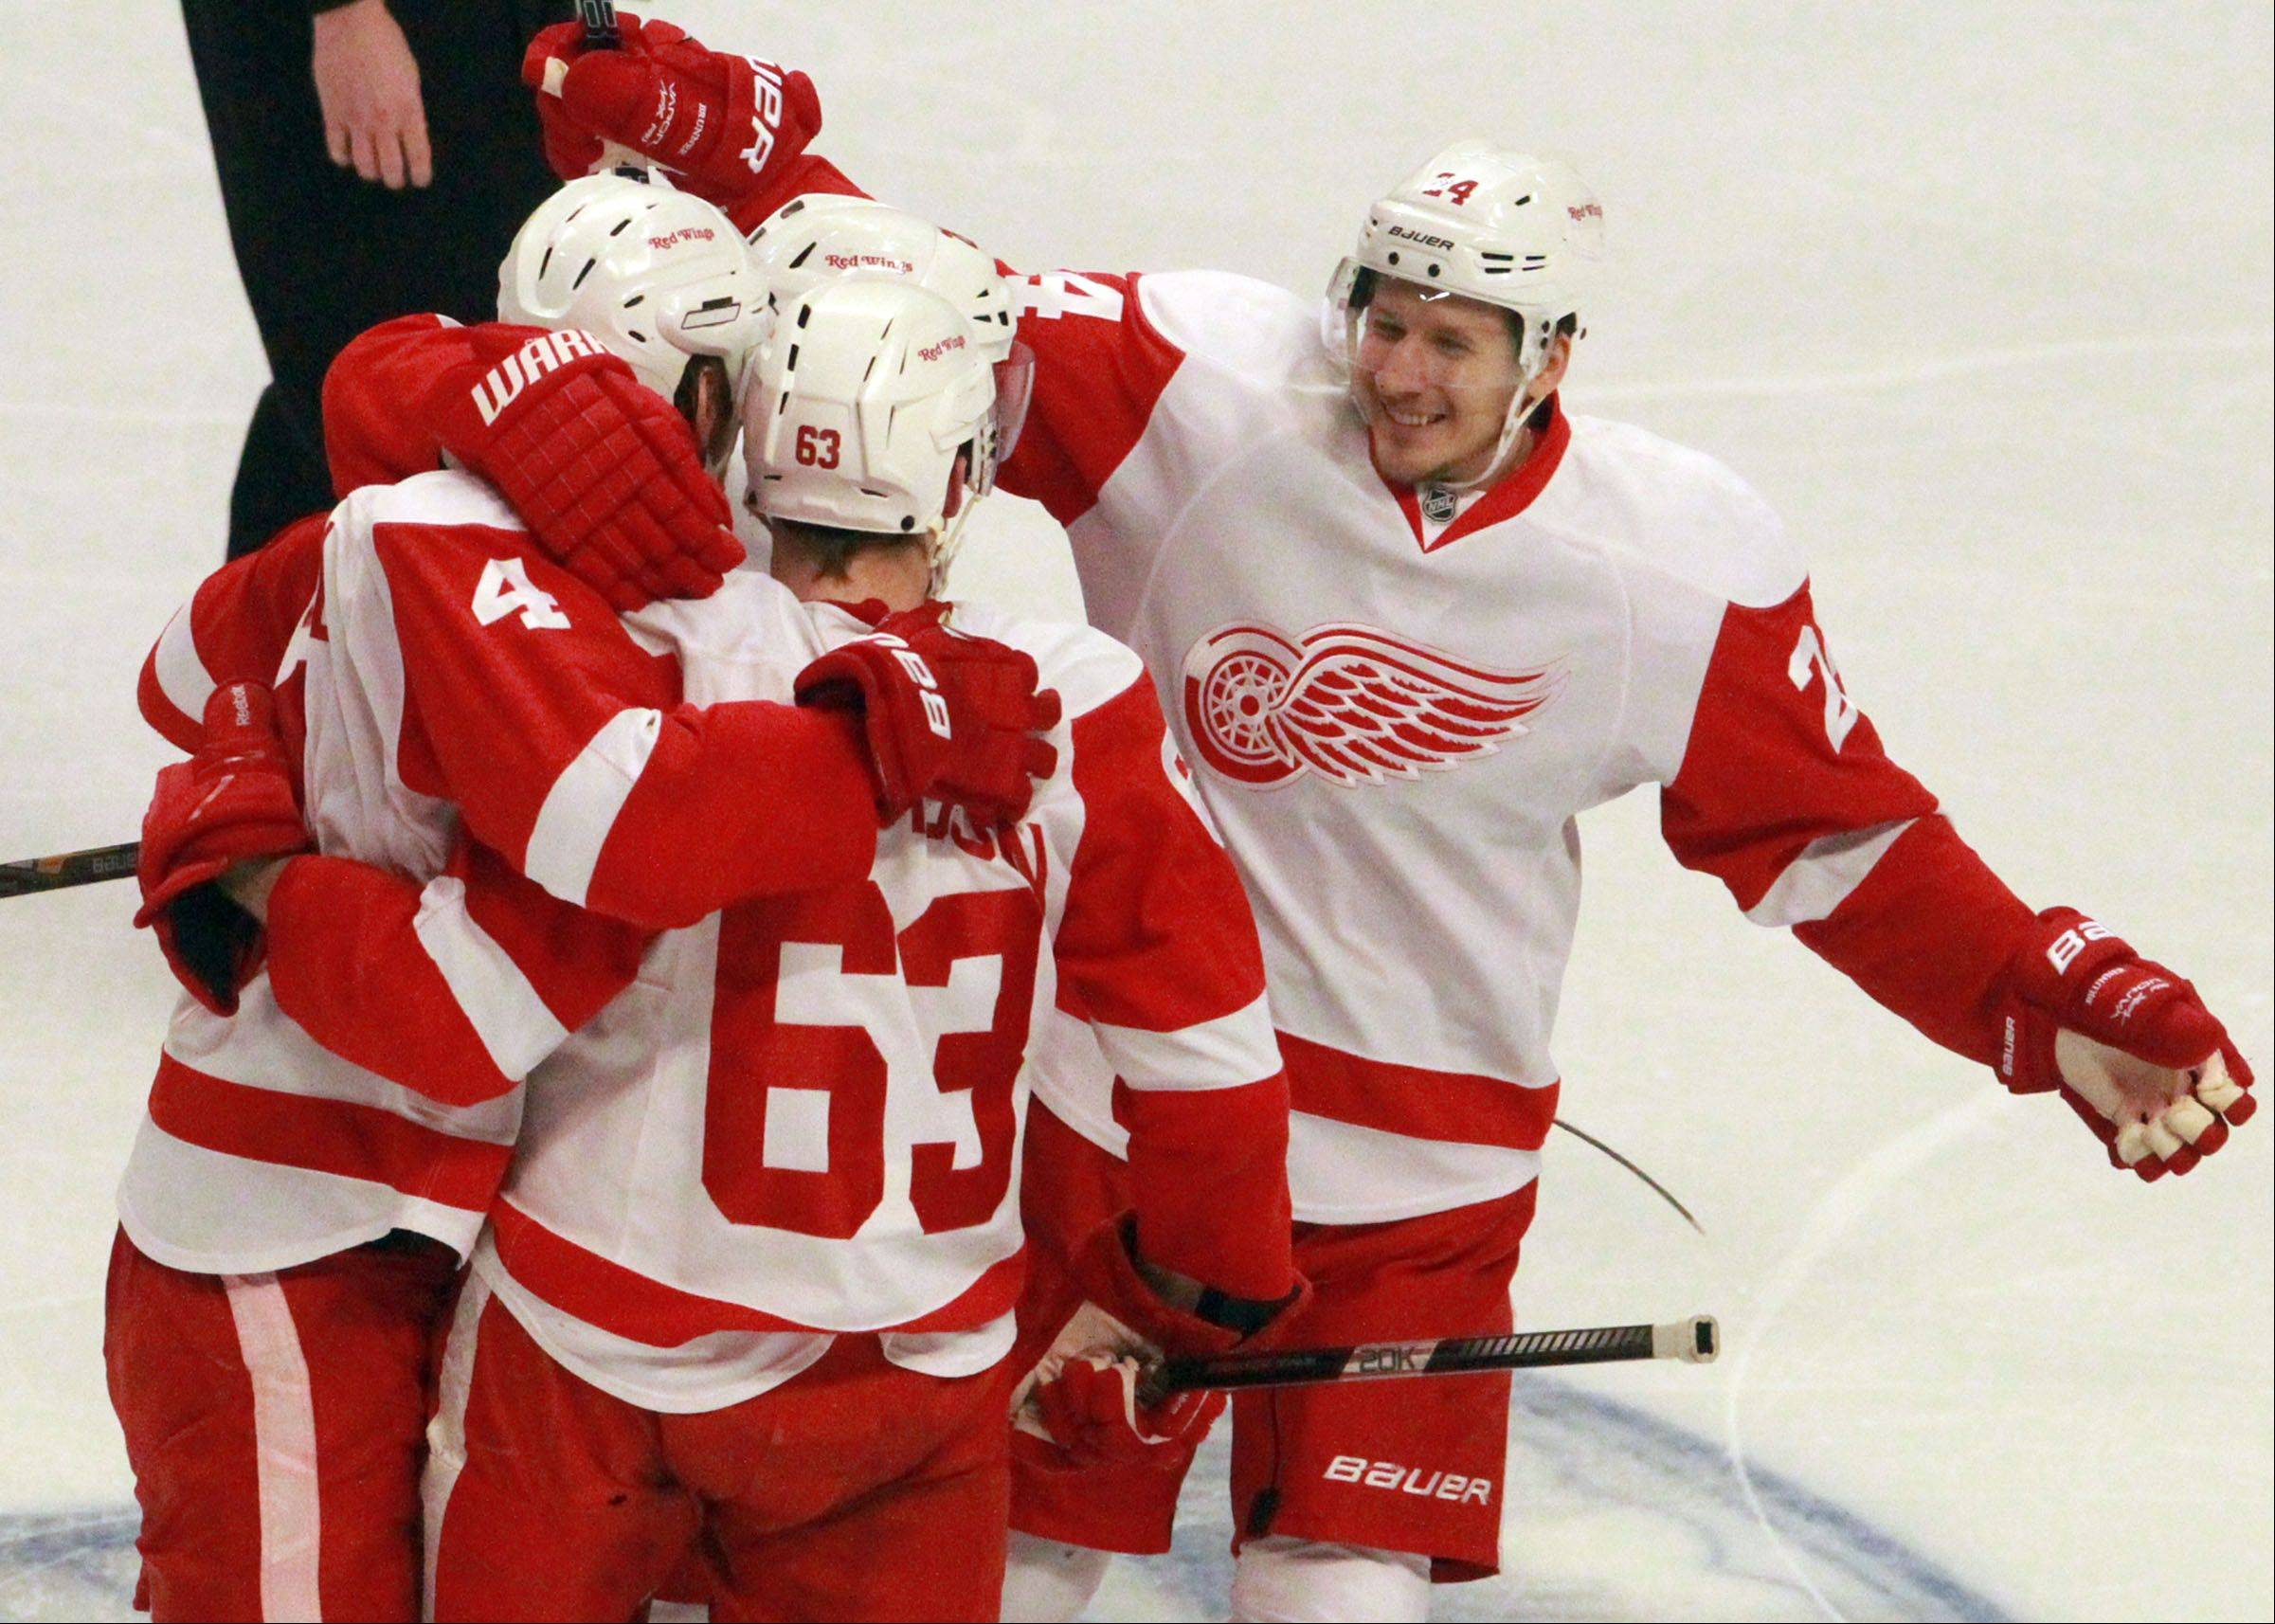 The Detroit Red Wings celebrate a goal by defenseman Brian Lashoff, right, during the second period of Game 2.